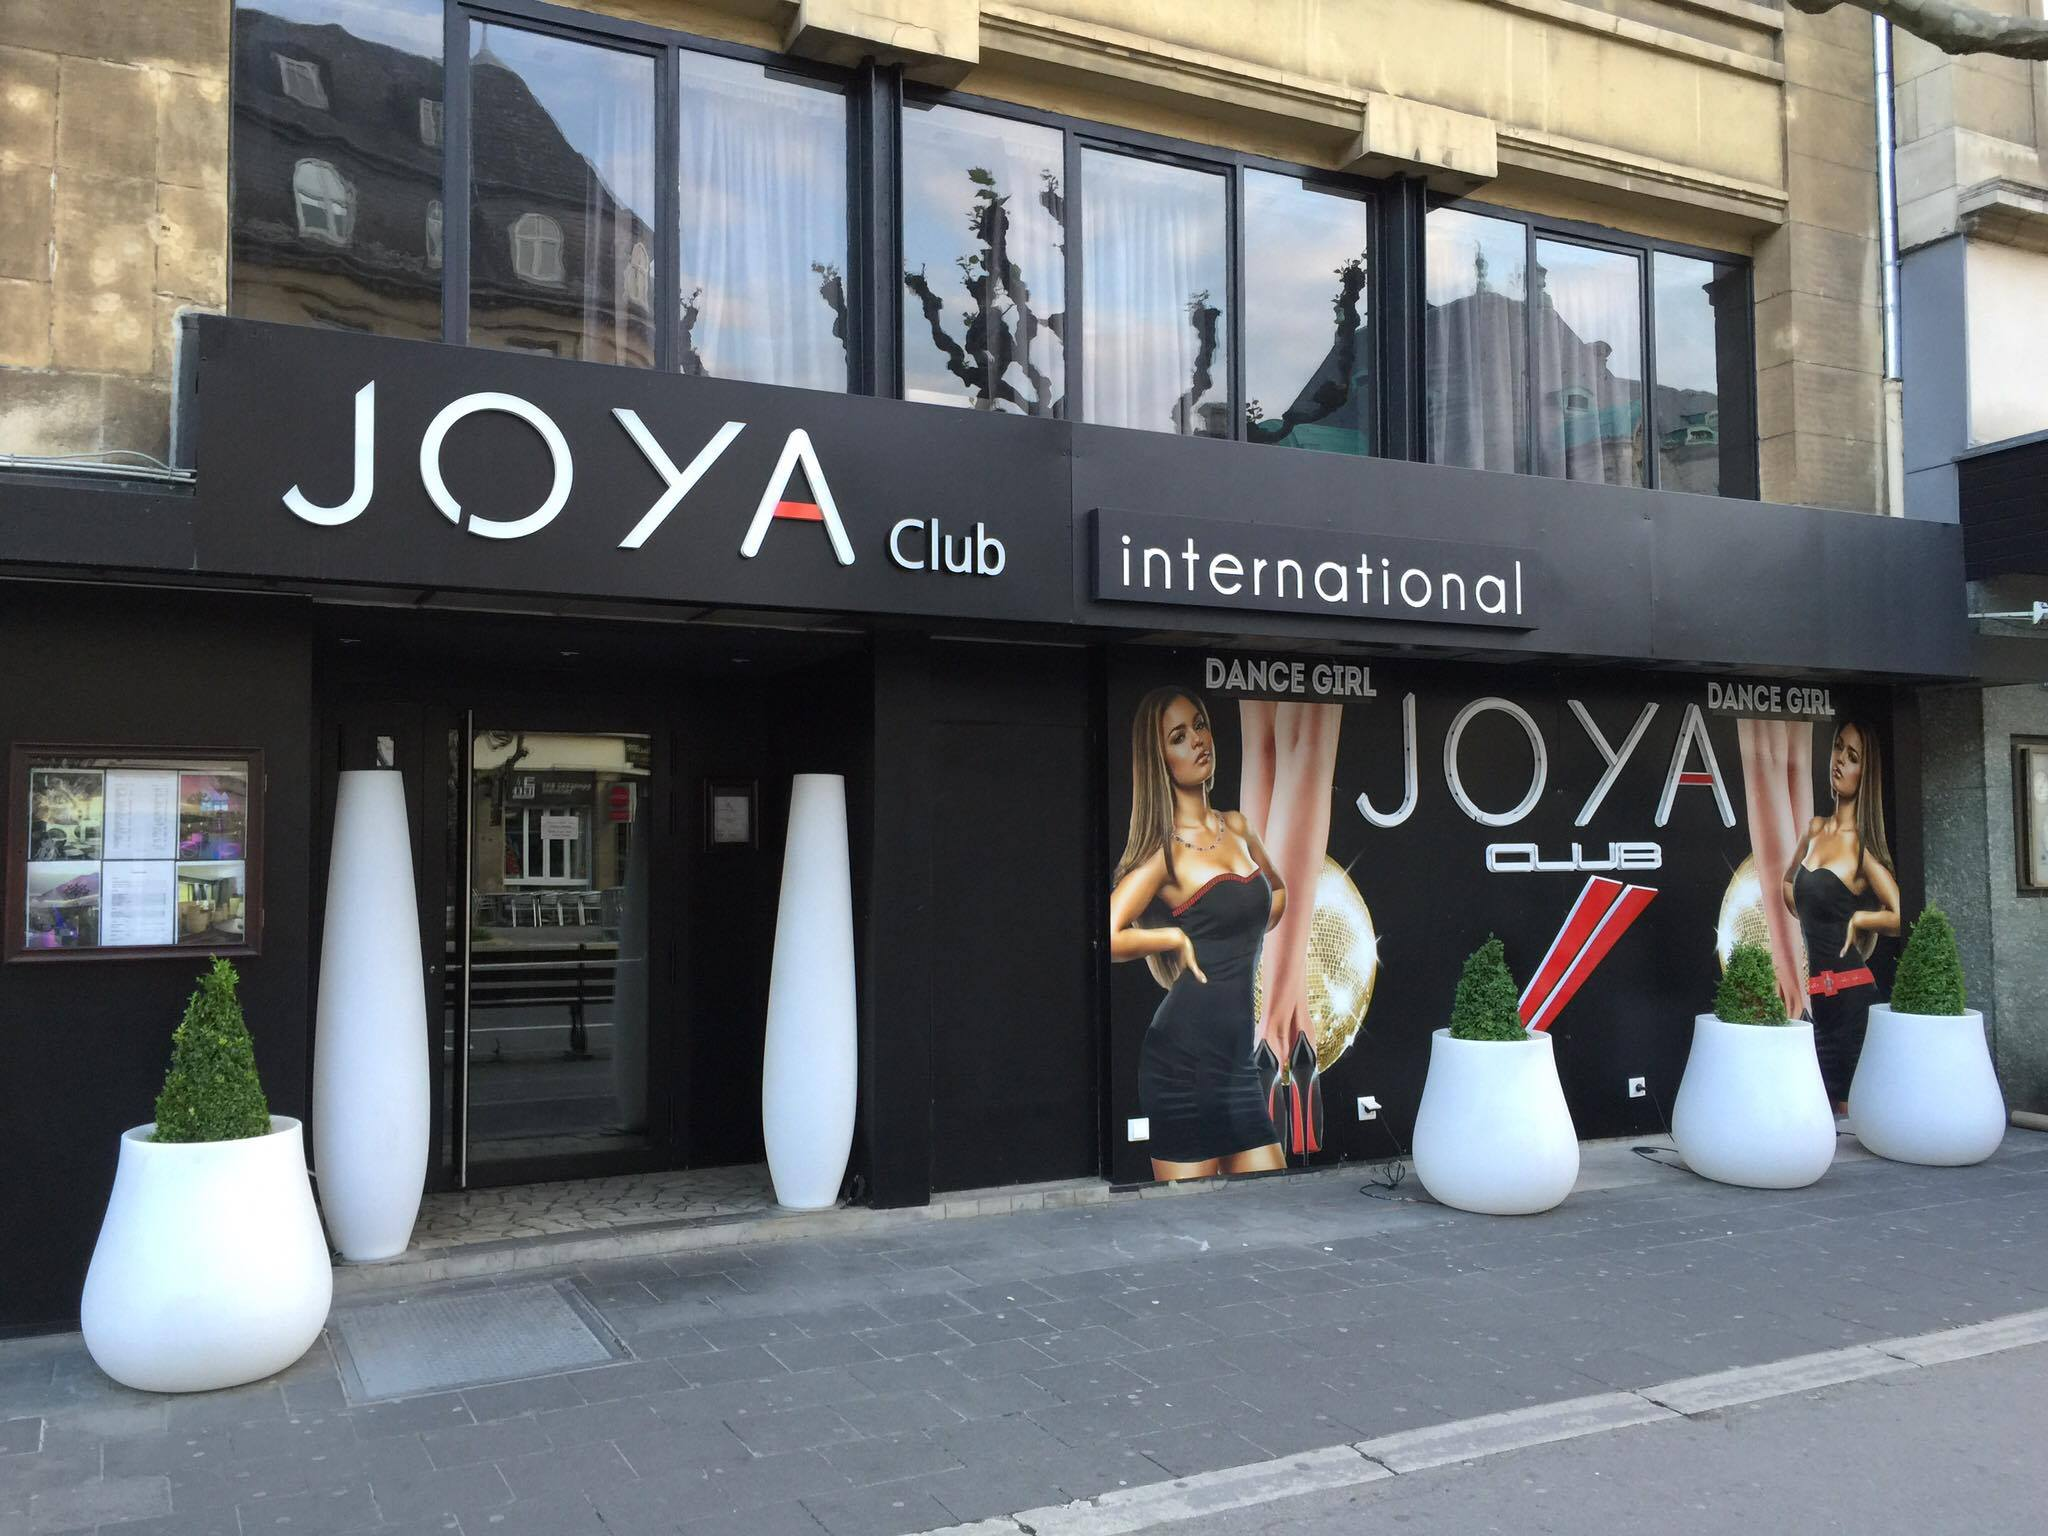 JOYA international club